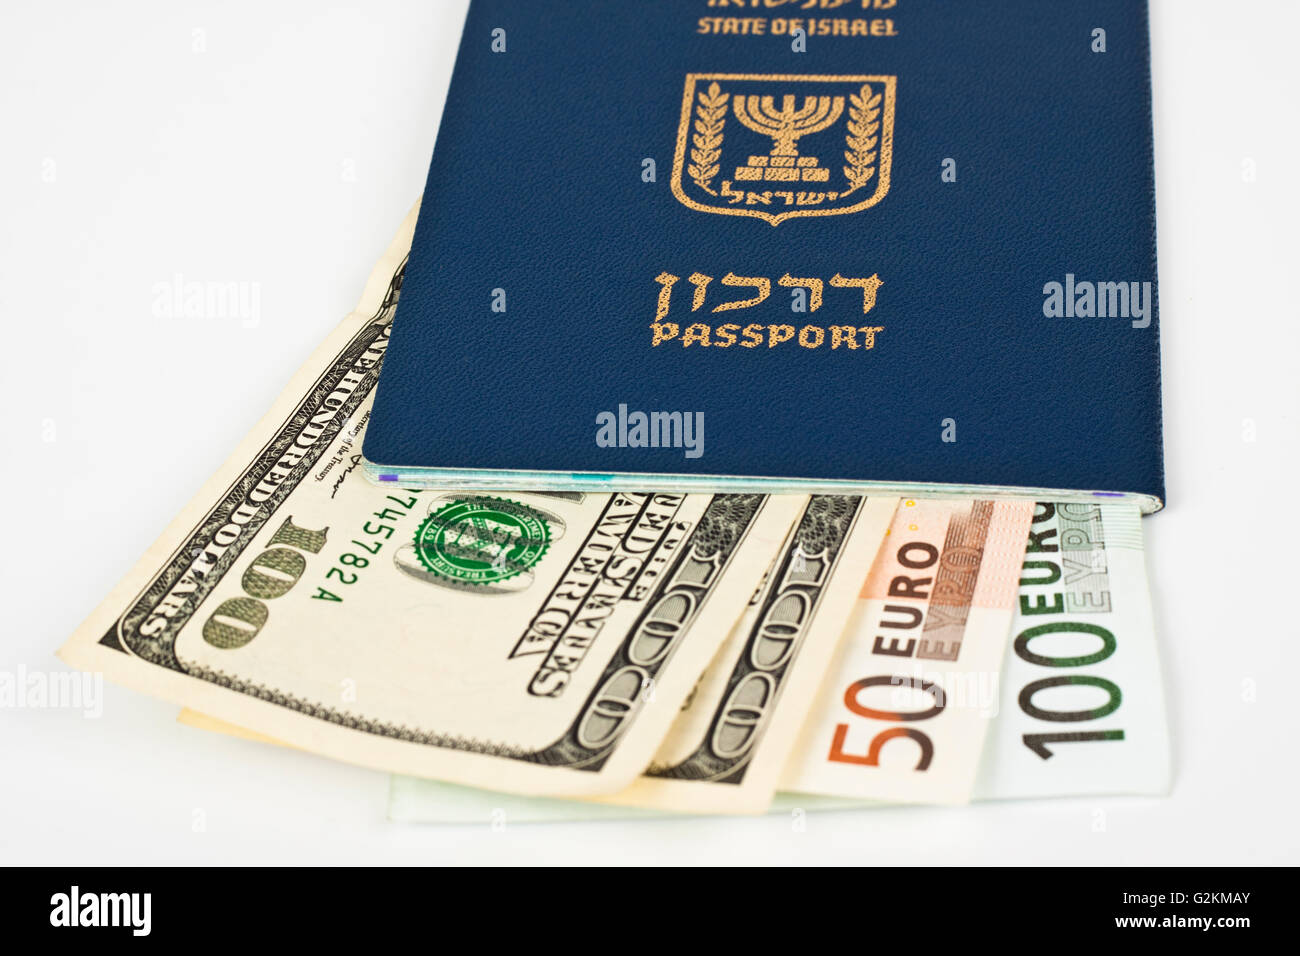 israeli passport and dollar bills isolated on white with cliping path Stock Photo